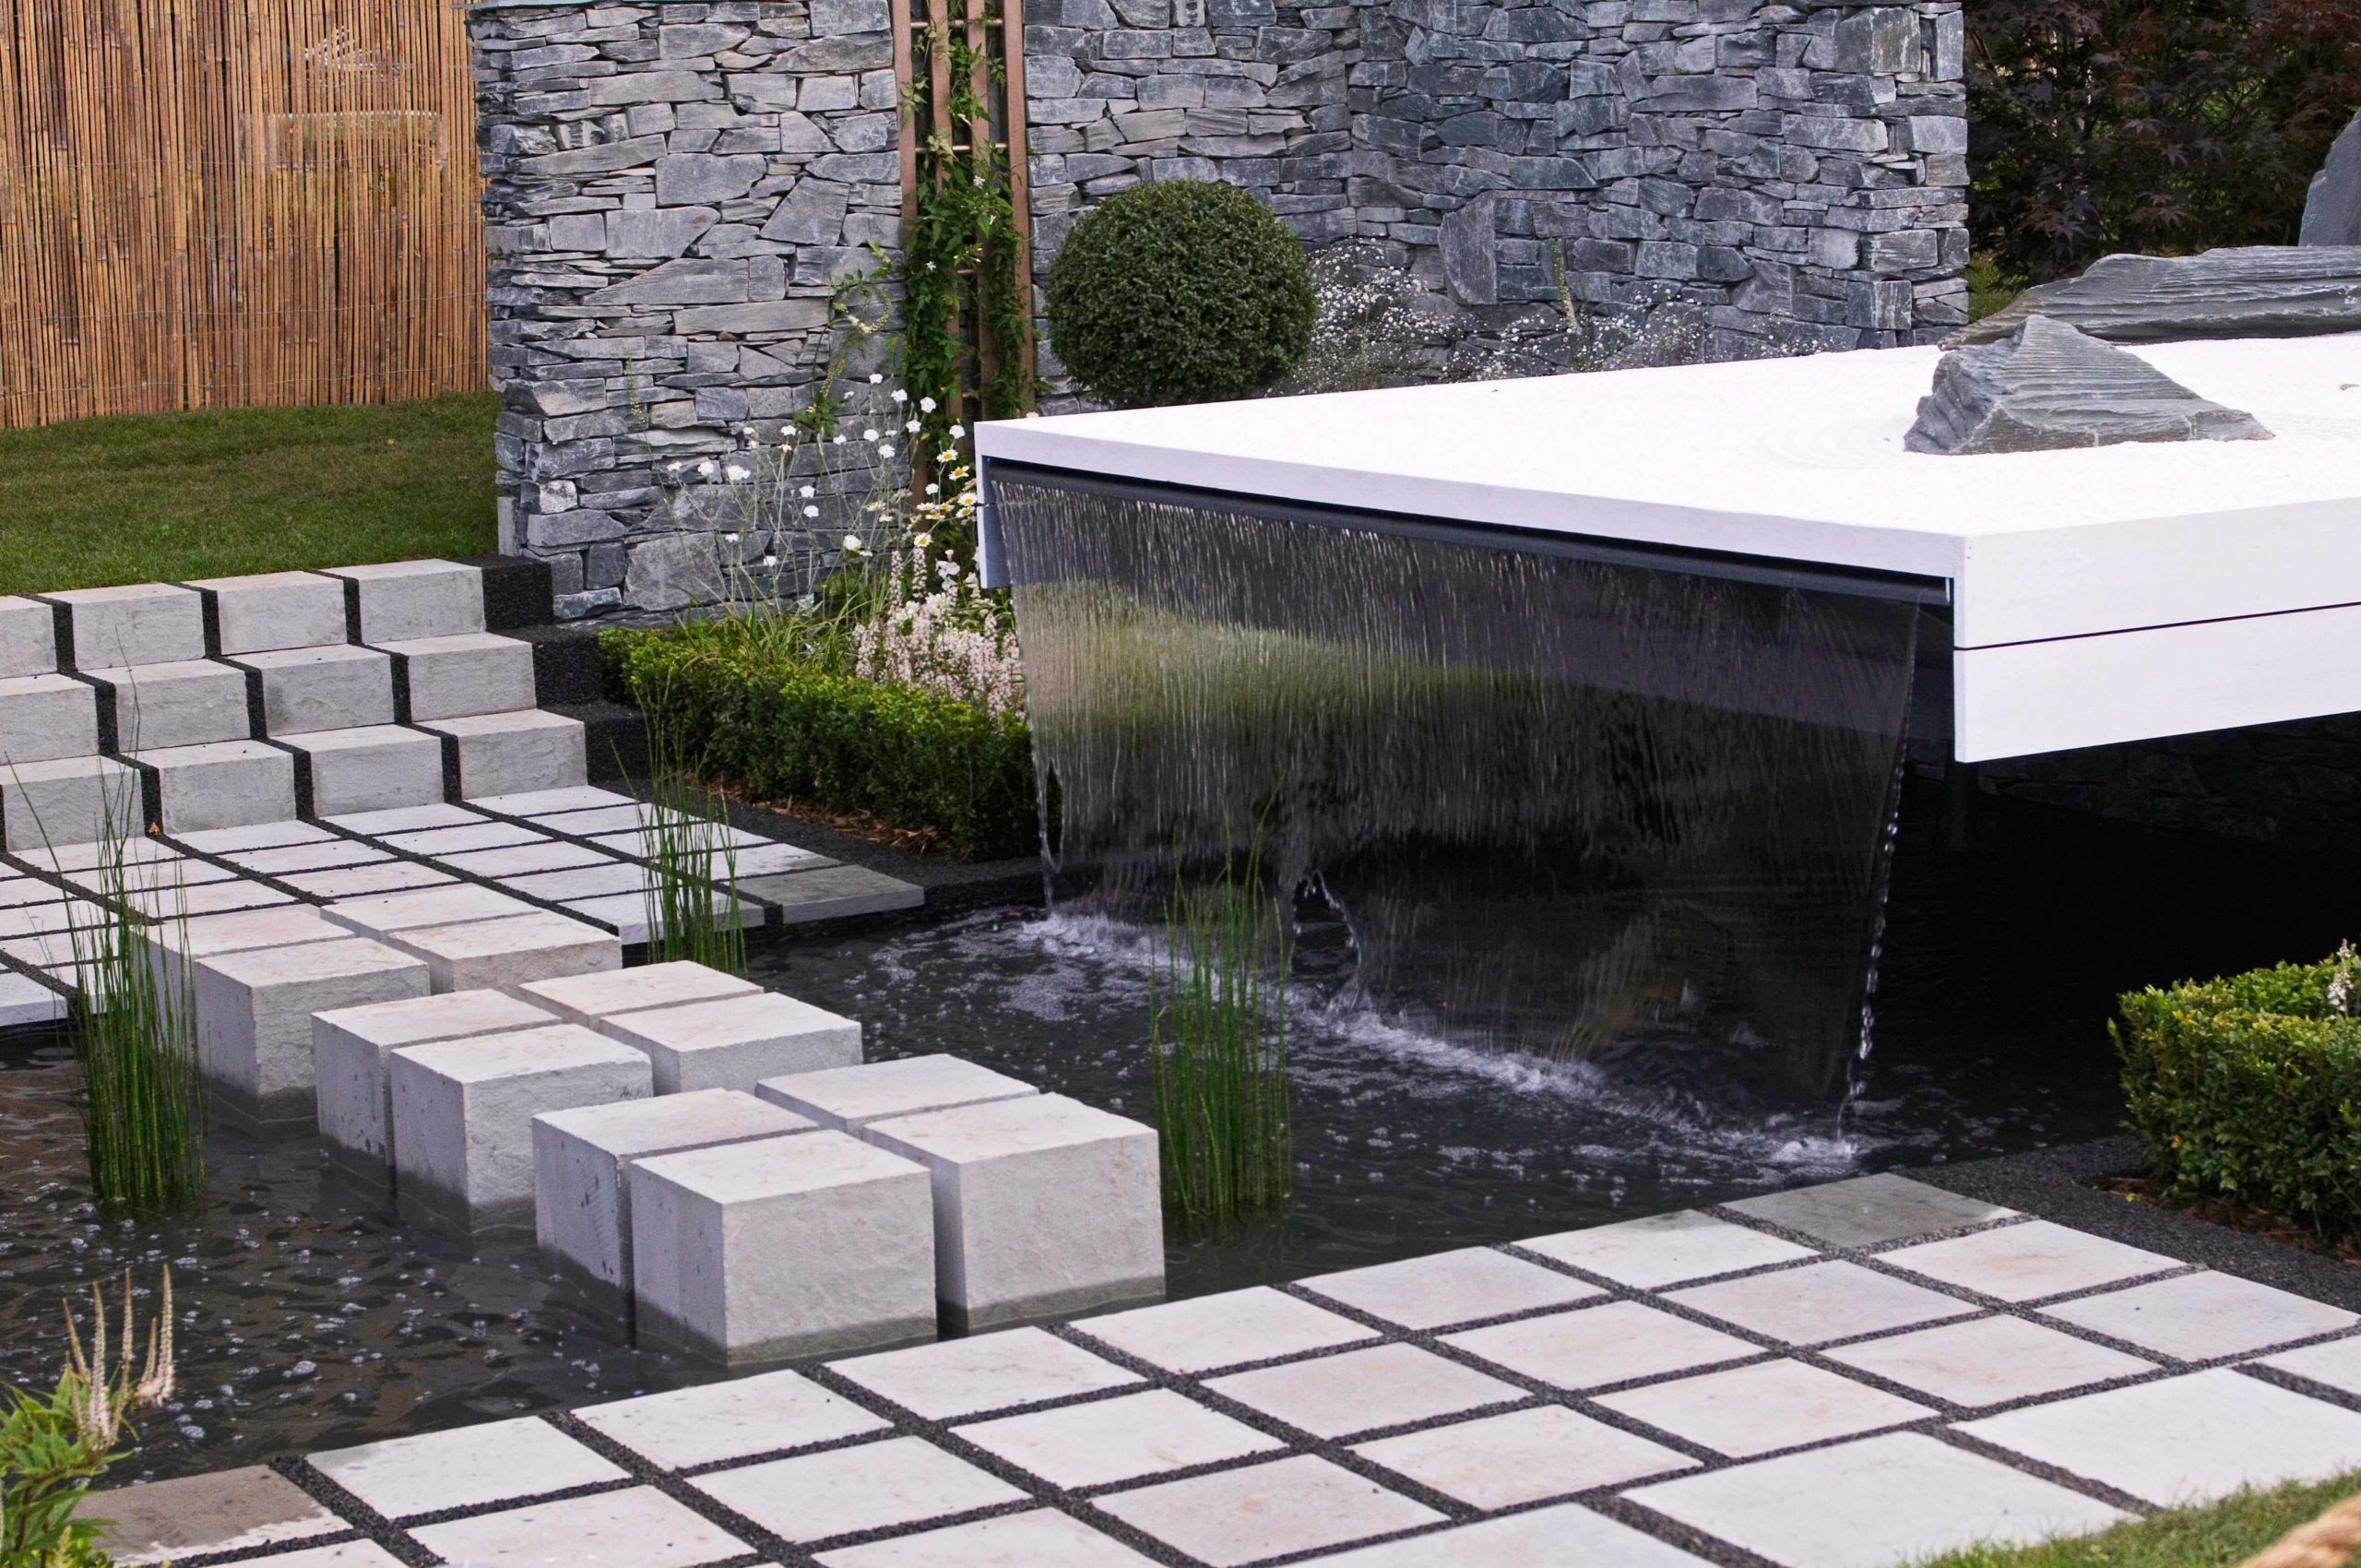 Garden Water Feature And Fountains Installation Company Hounslow TW3